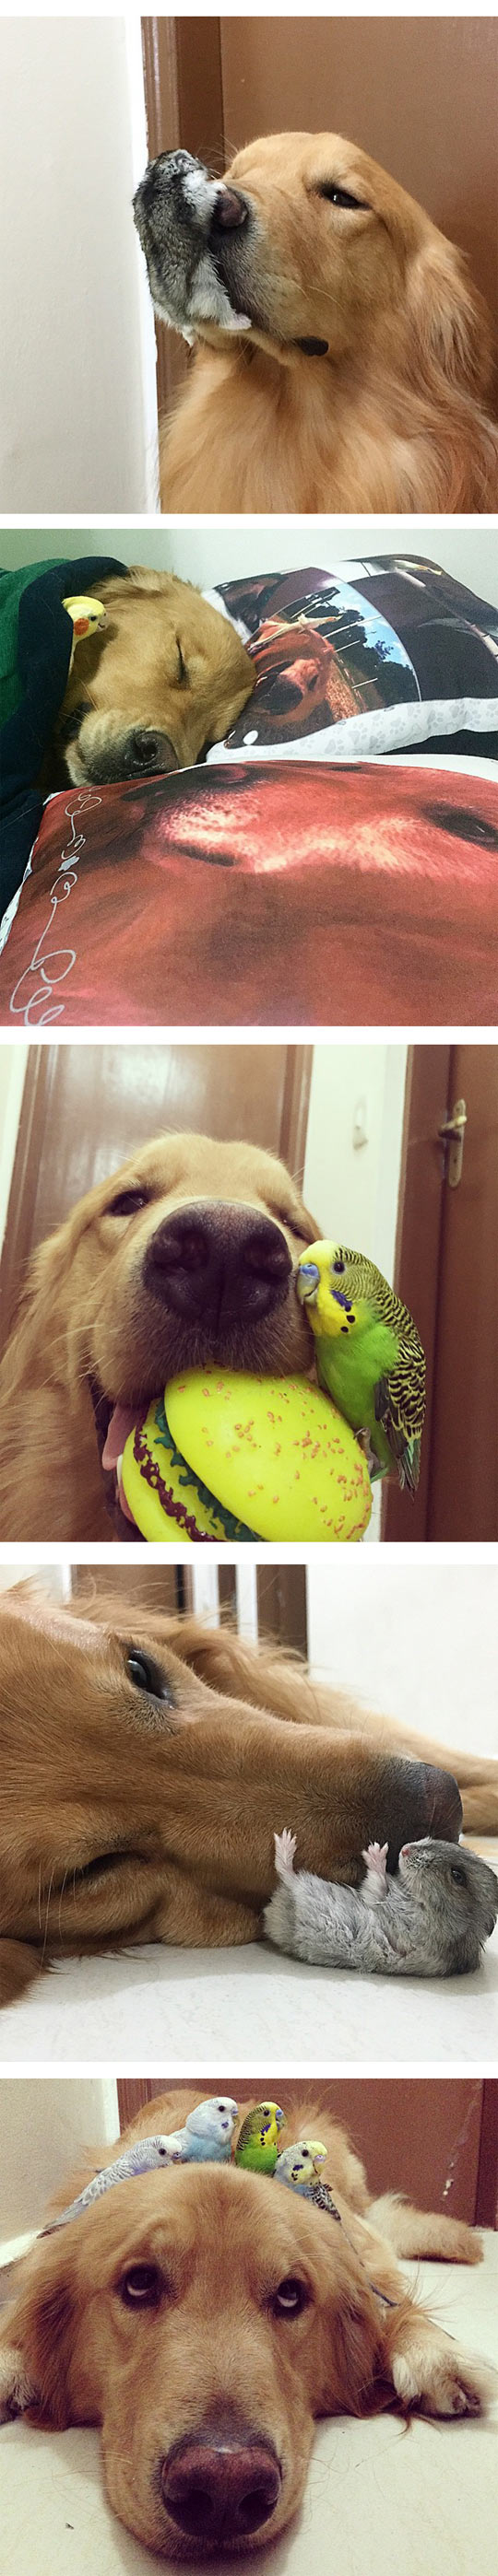 2funny-bob-dog-bird-friends